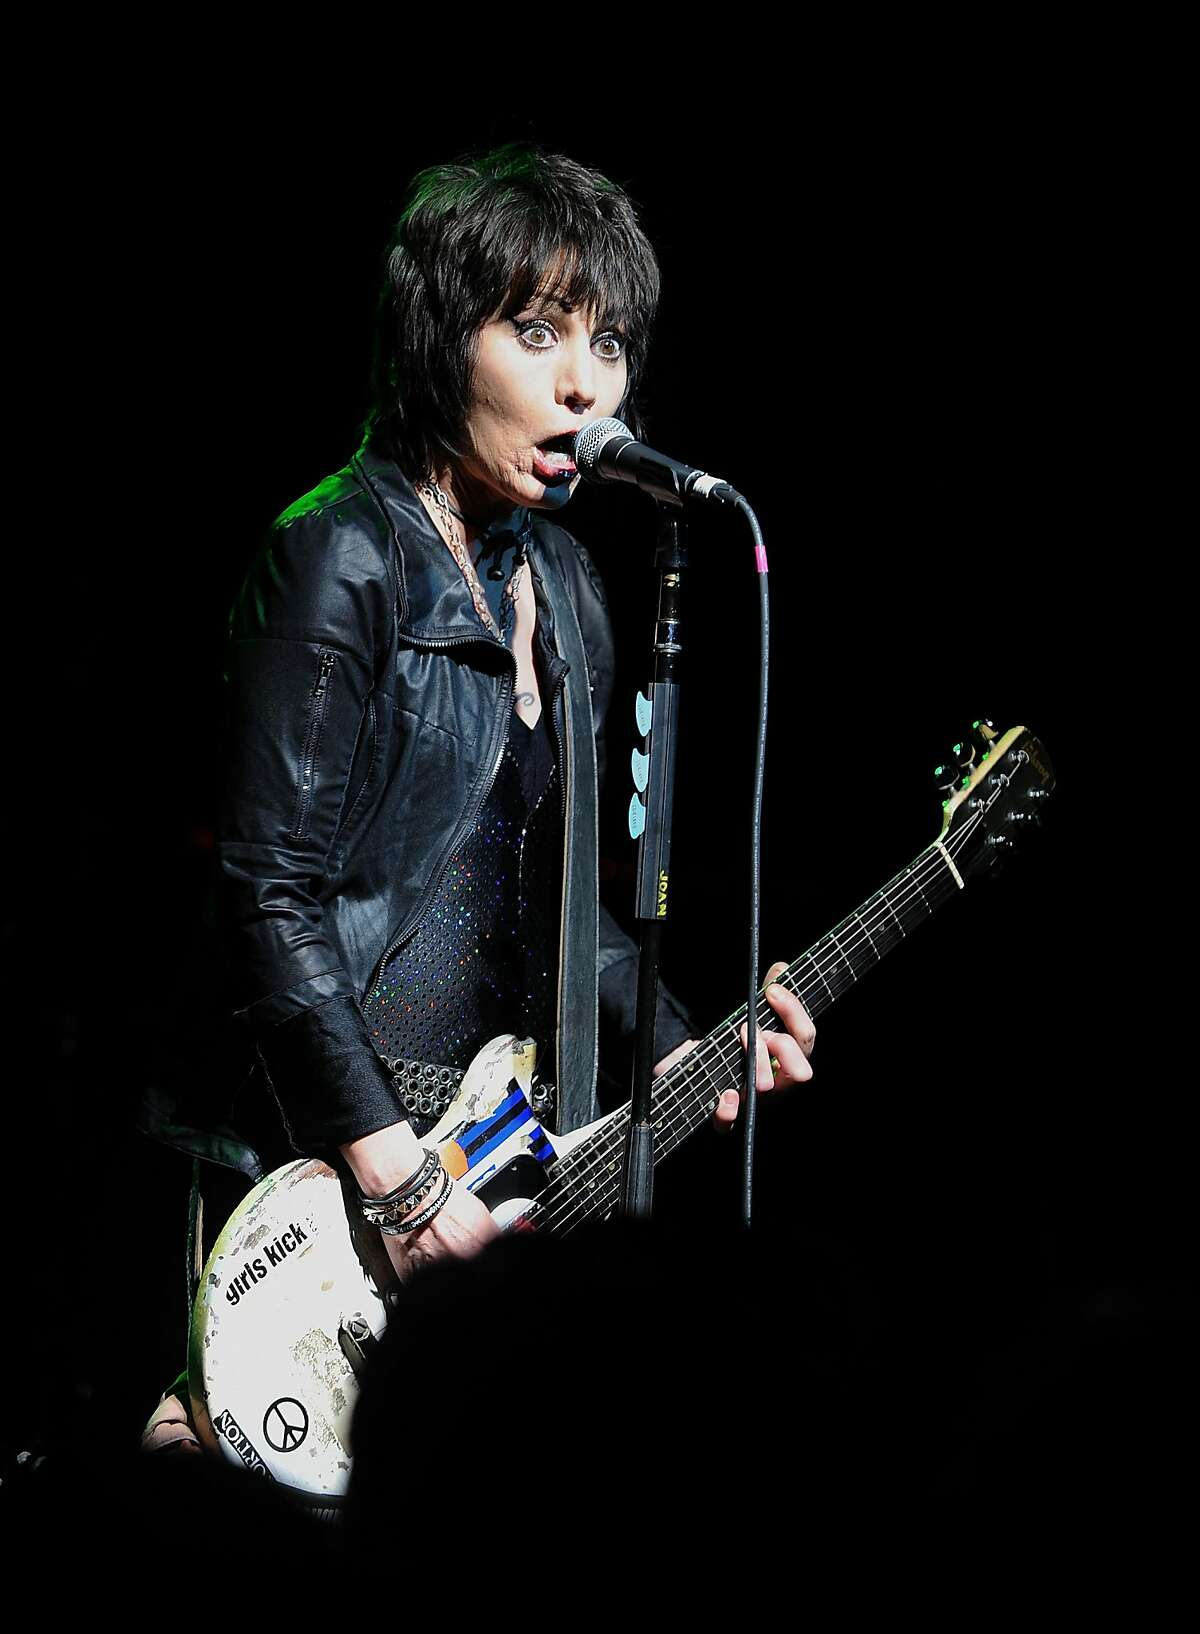 NEW YORK, NY - MAY 03: Musician Joan Jett performs at the 2nd Annual National Concert Day Show at Irving Plaza on May 3, 2016 in New York City. (Photo by Brad Barket/Getty Images)